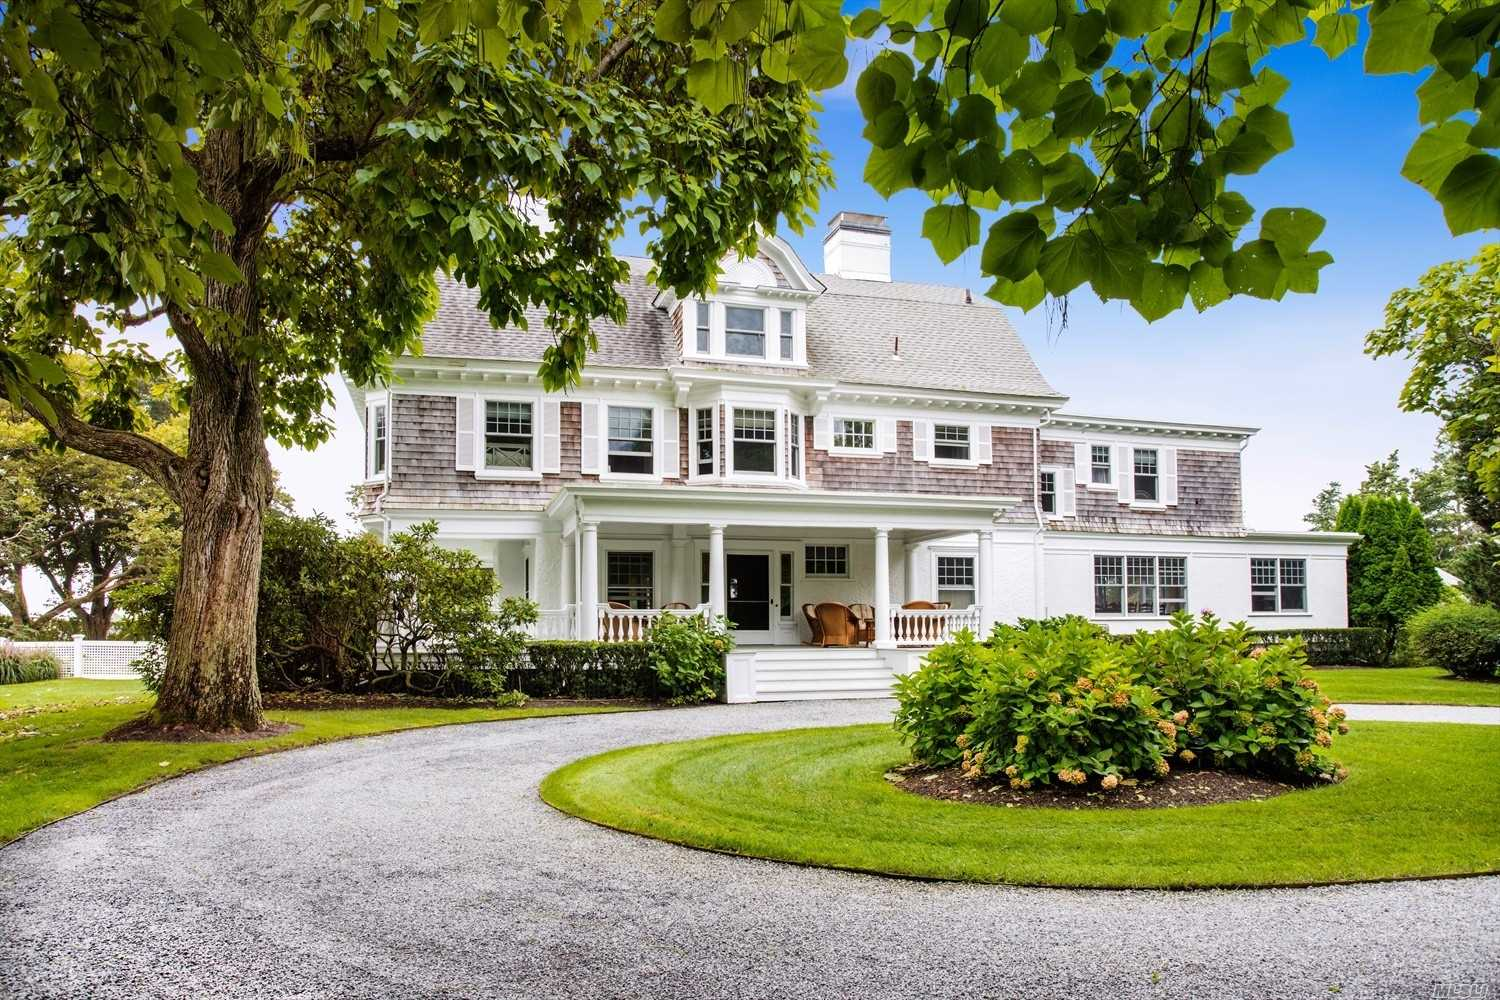 Set On Two Manicured Acres In The Heart Of Quogue's Most Prestigious Estate Area, This Stately Shingle-Style Colonial Revival Is A Glorious, Pristine Example Of The Golden Age Of The Early 20th Century On The East End Of Long Island. Historic Trees Shade The Approach To The Over-Sized Entry Door That Is The Centerpiece Of The Wide, Hipped-Roof, Wrap-Around Porch. Inside The Home, A Double Living Room With Gleaming Century-Old Floors, And The Original 1903 Patterned Tin Ceiling Greet The Visitor.